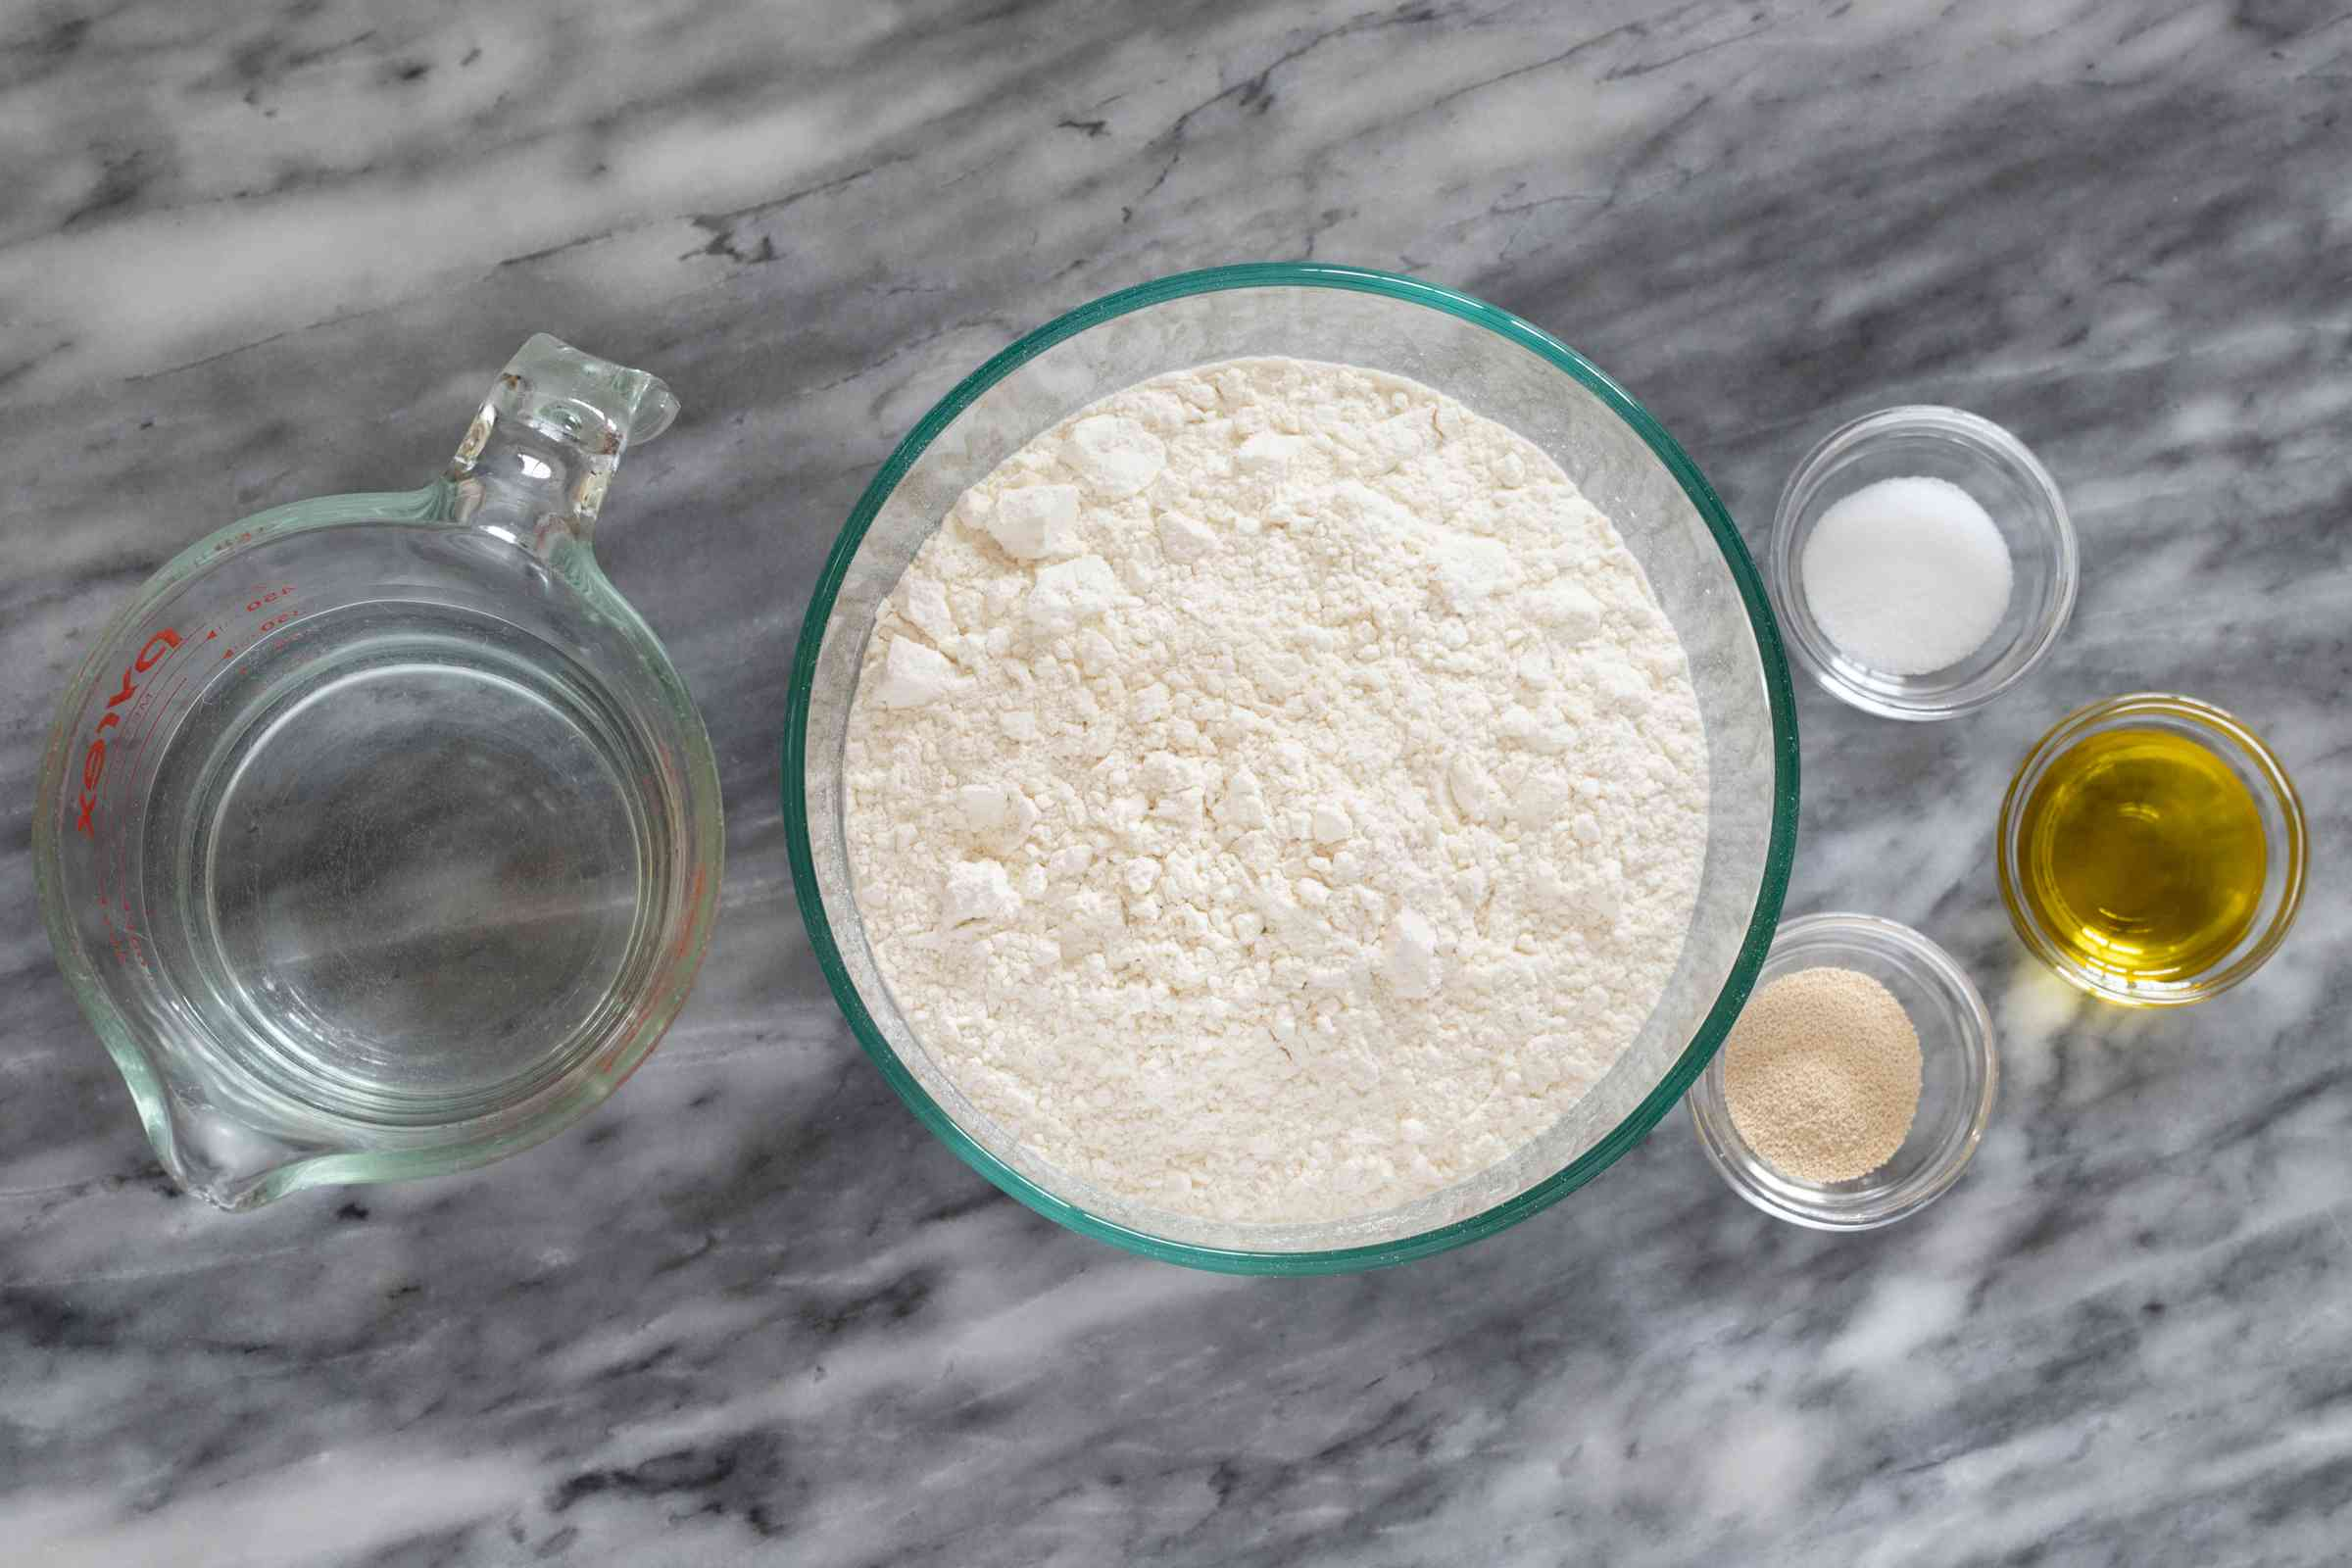 Ingredients for Instant Pot no-knead bread